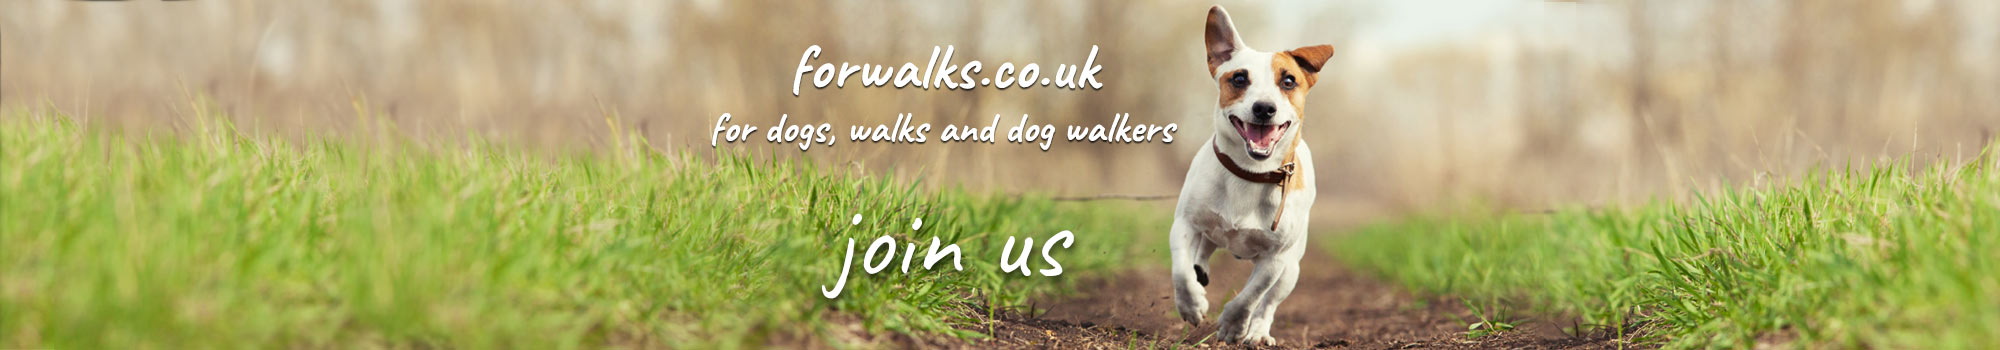 Join forwalks.co.uk